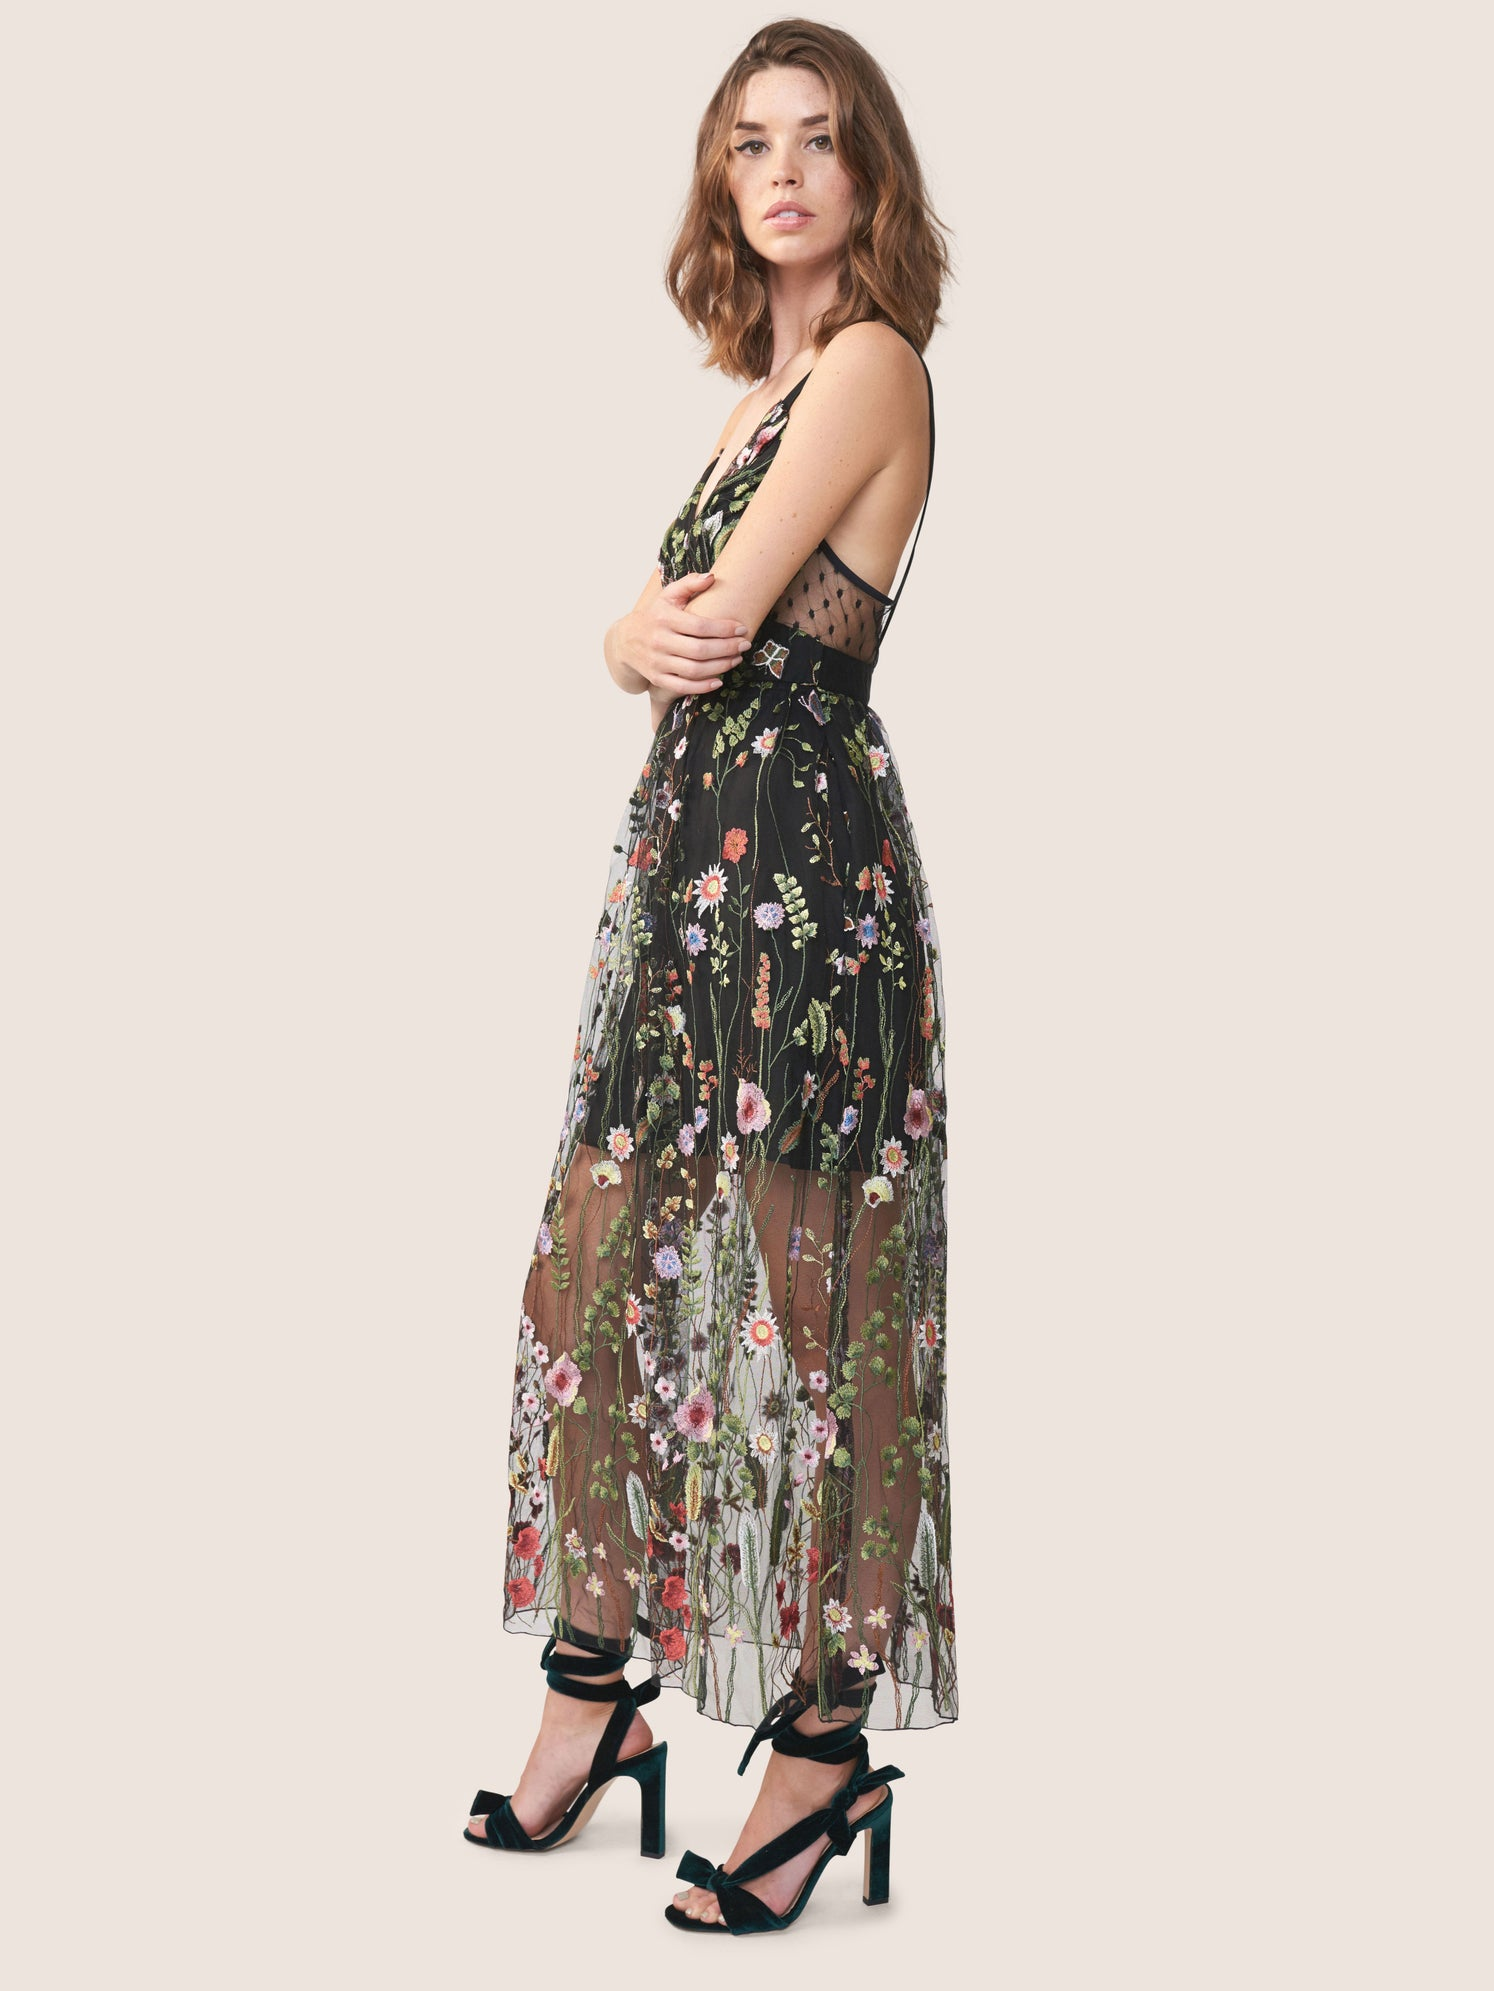 Floral embroidered mesh deep-v dress with side pockets